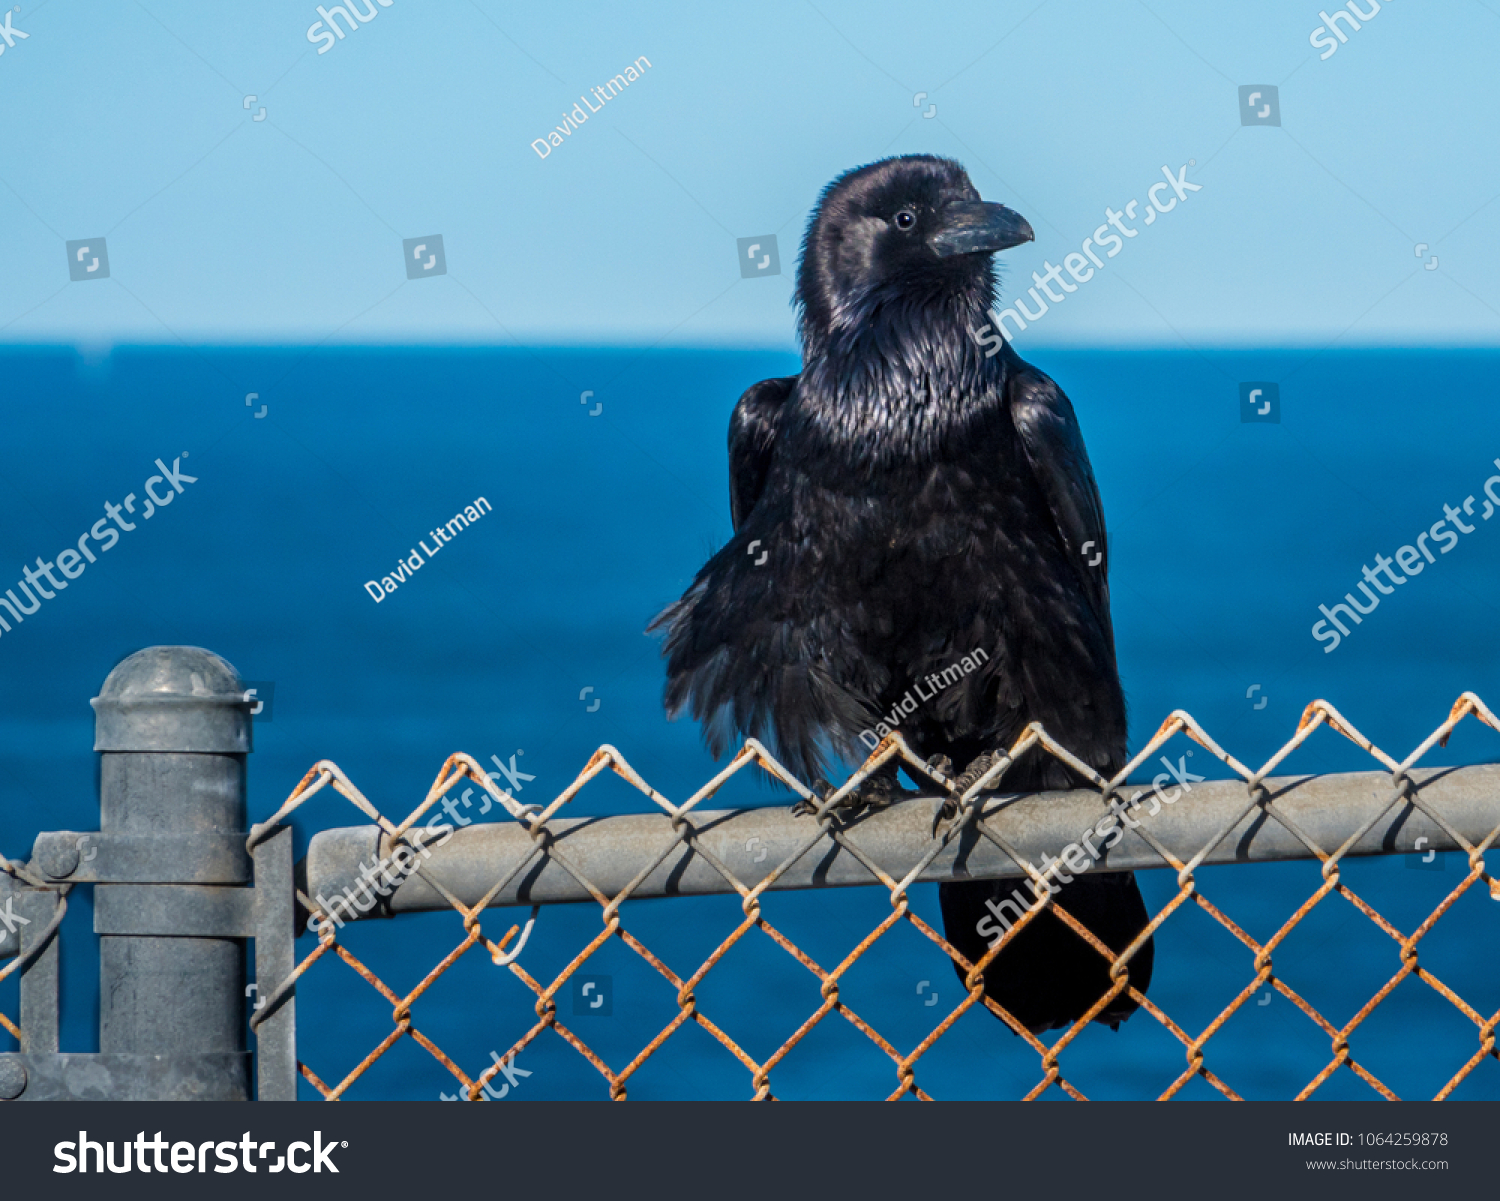 A Blackbird perched on a chain-link fence overlooking the Pacific Ocean in San Pedro, California, close to the Los Angeles Harbor.